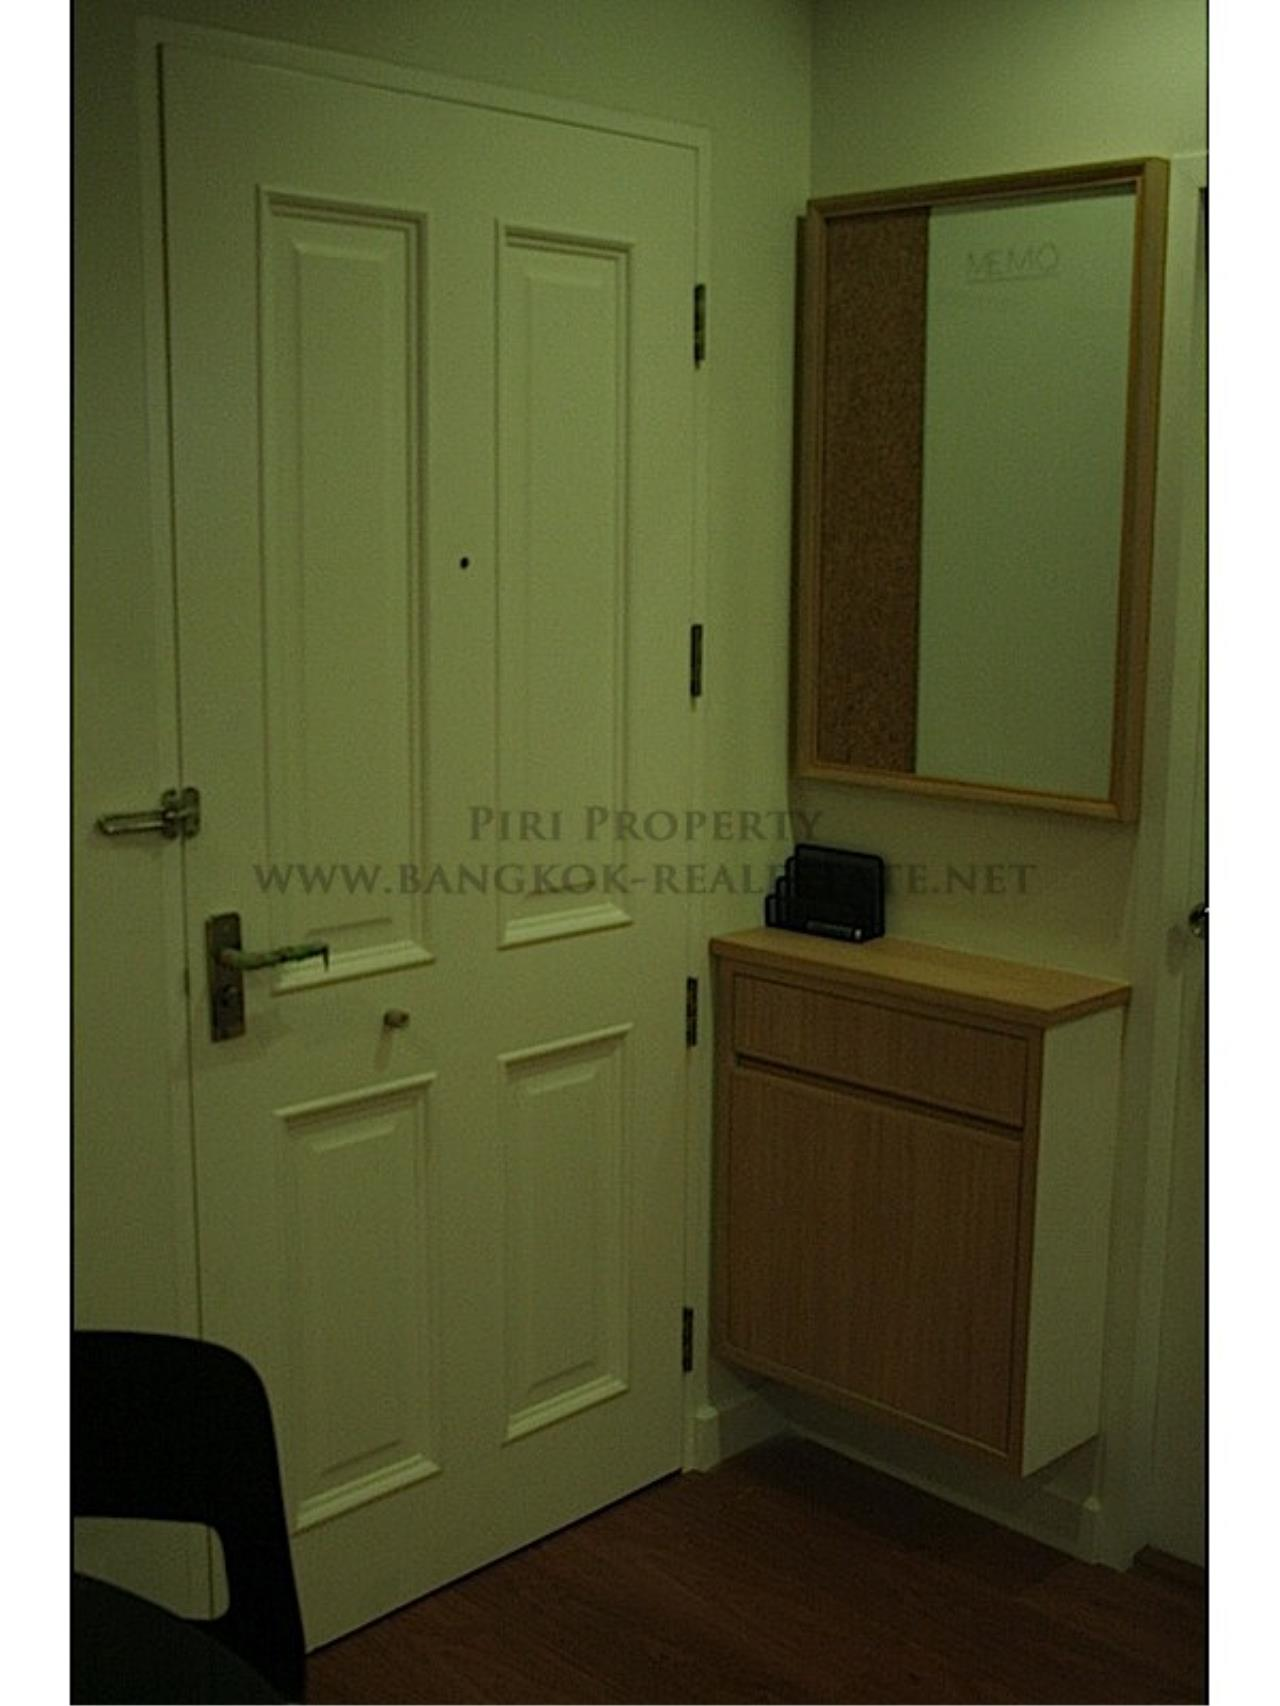 Piri Property Agency's Nicely Furnished One Bedroom Unit - Condo One X 7